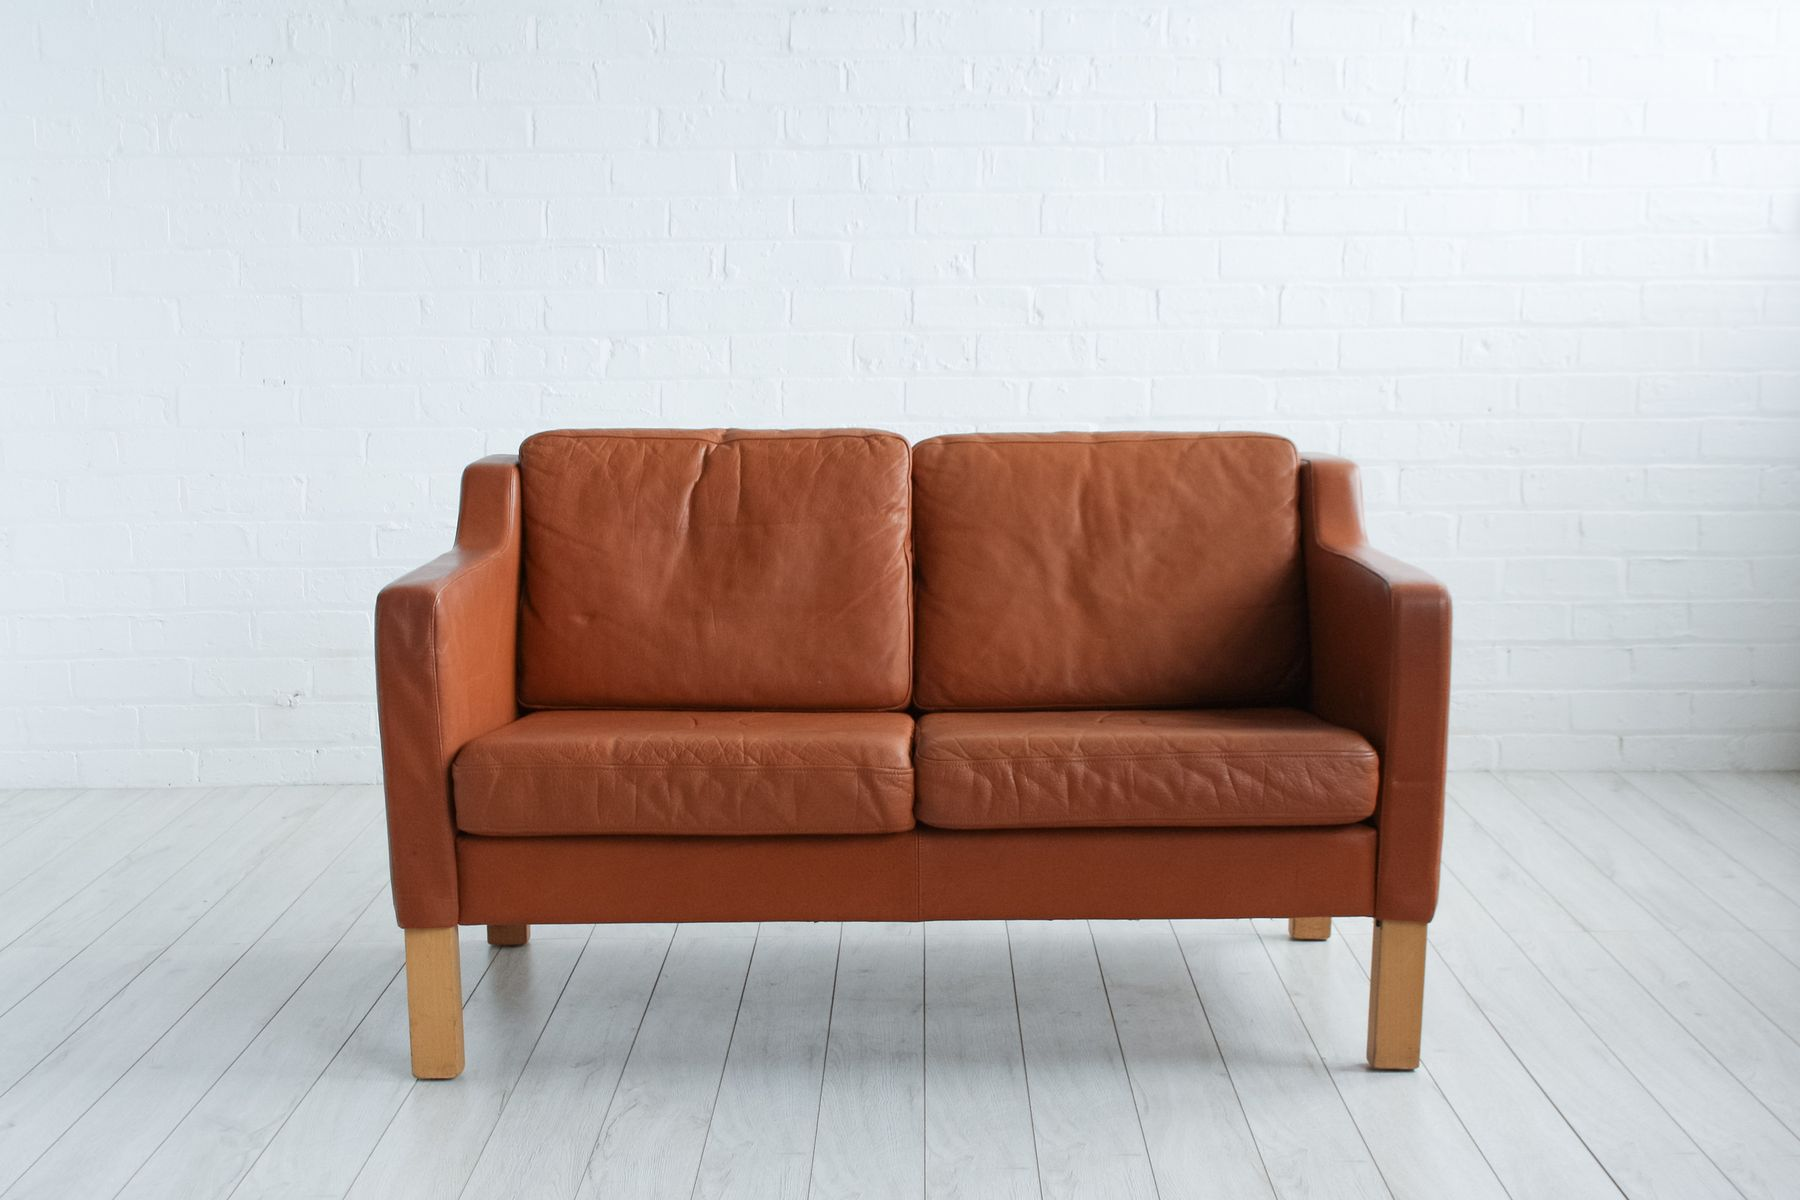 mid century brown leather sofa 1970s for sale a